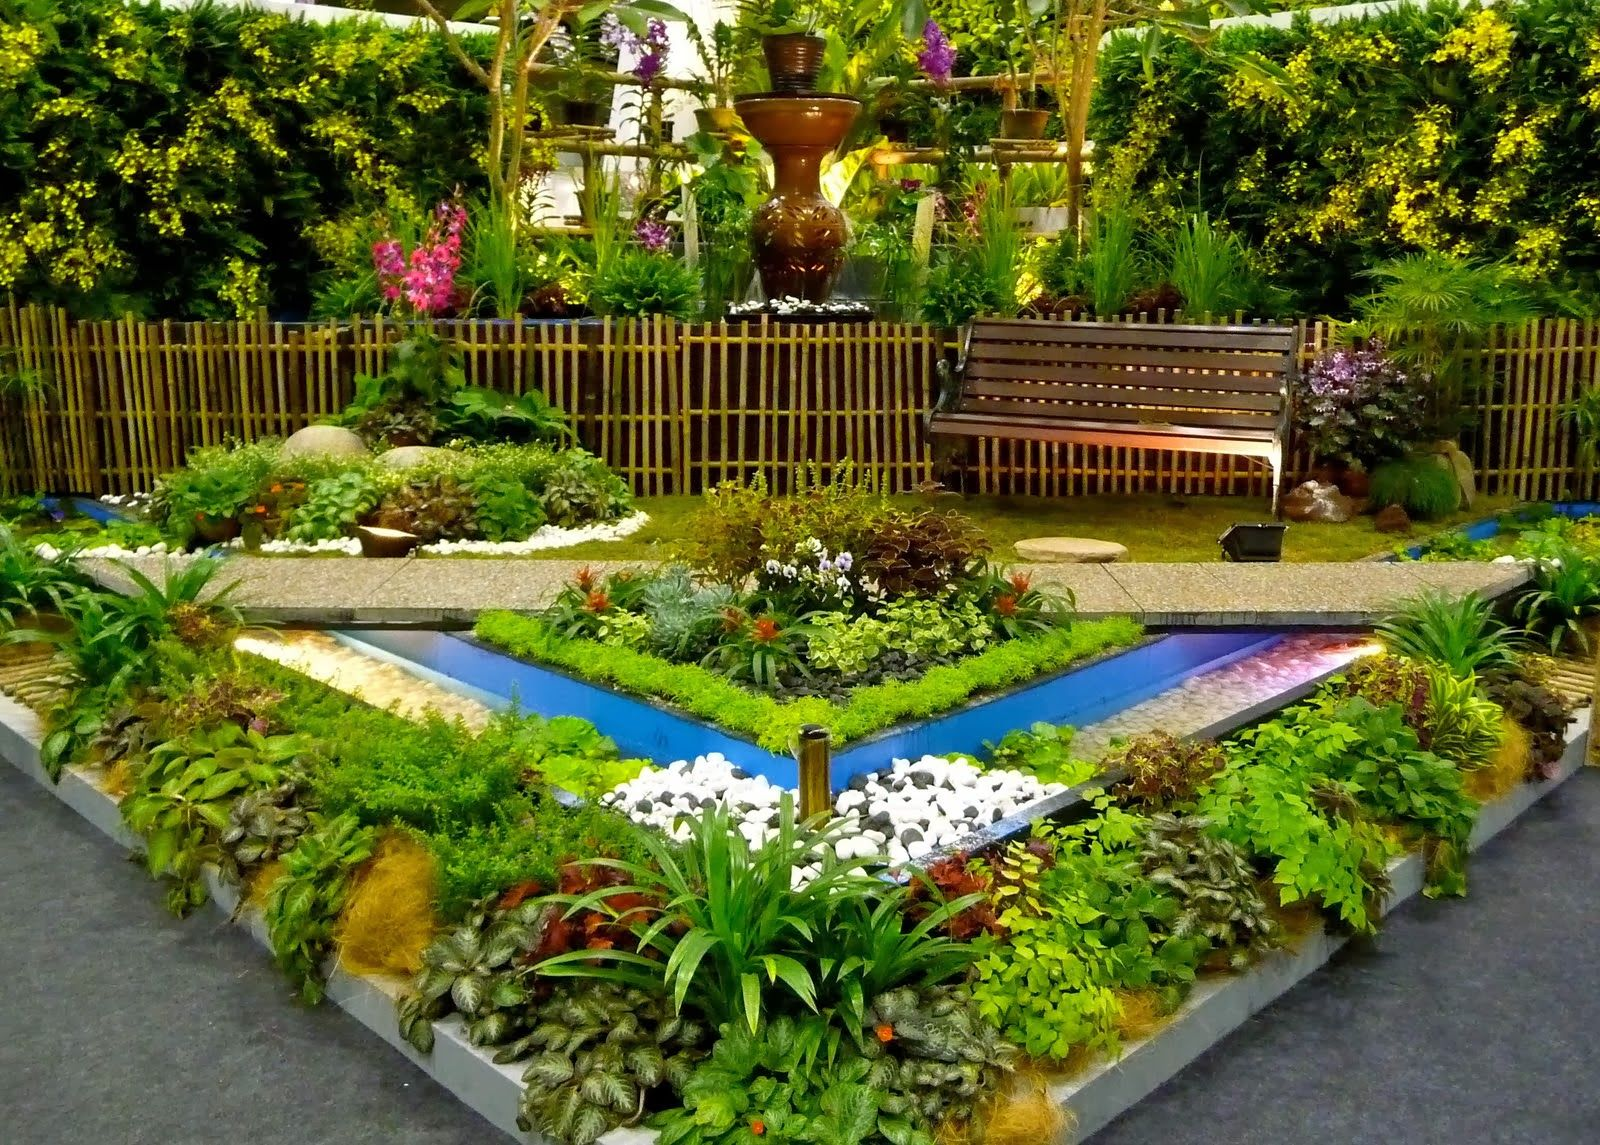 Best landscaping ideas i have ever seen wow design for Garden design and landscaping